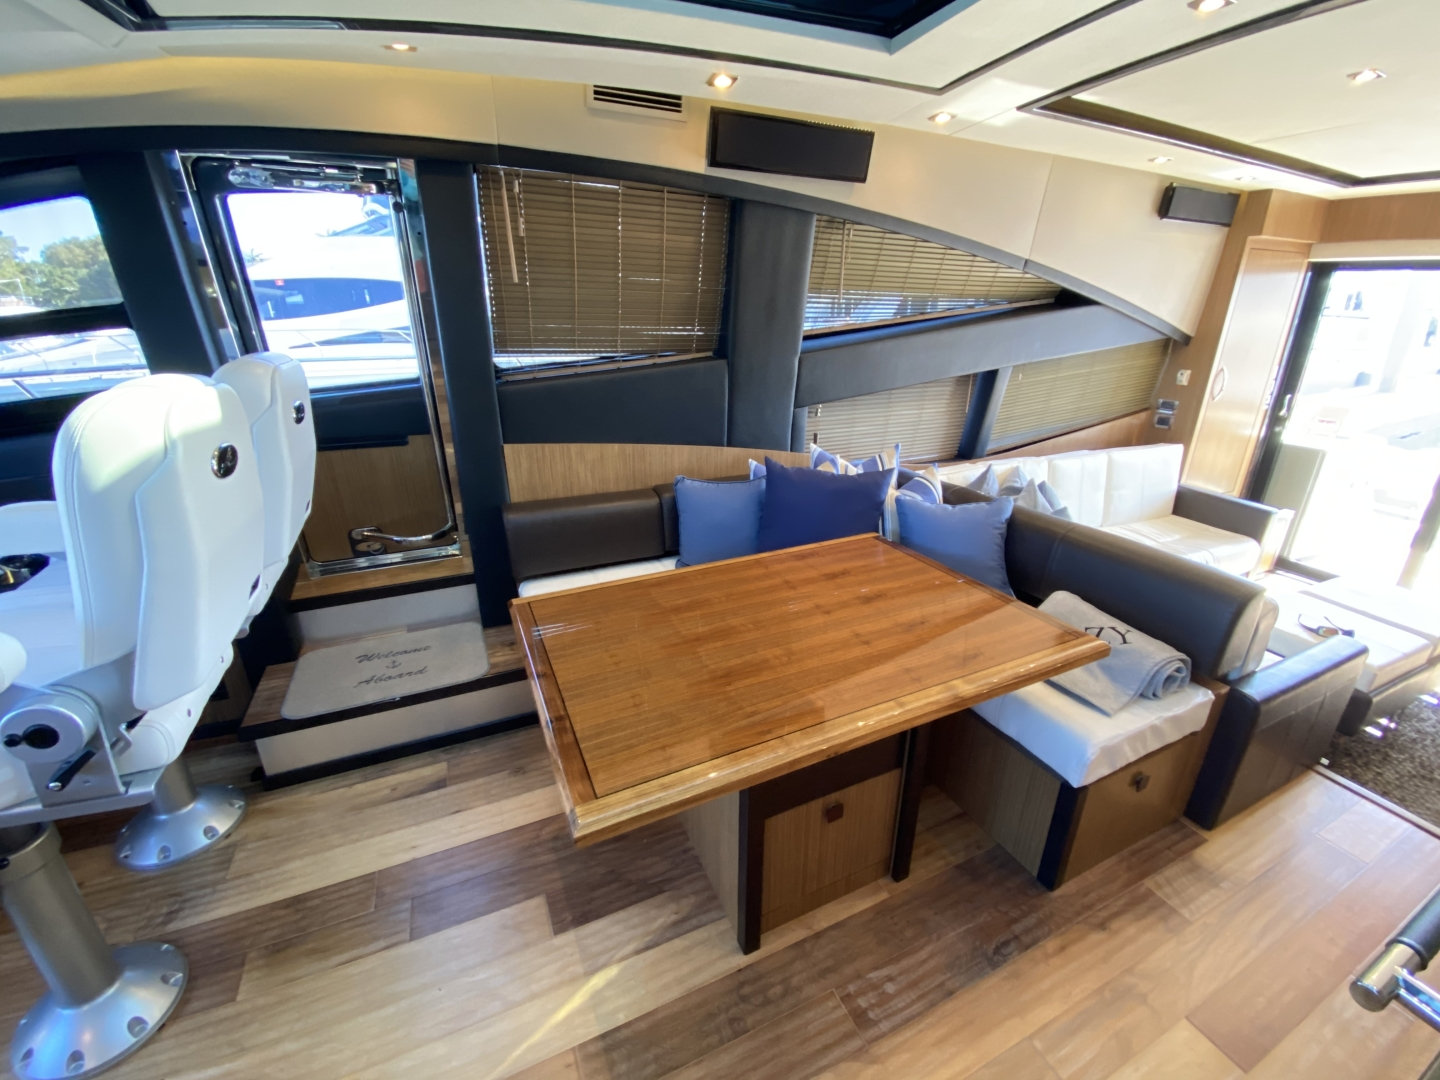 Sea Ray-L650 Express 2016-Cozy Fort Lauderdale-Florida-United States-2016 Sea Ray L650 Dinette-1367652 | Thumbnail